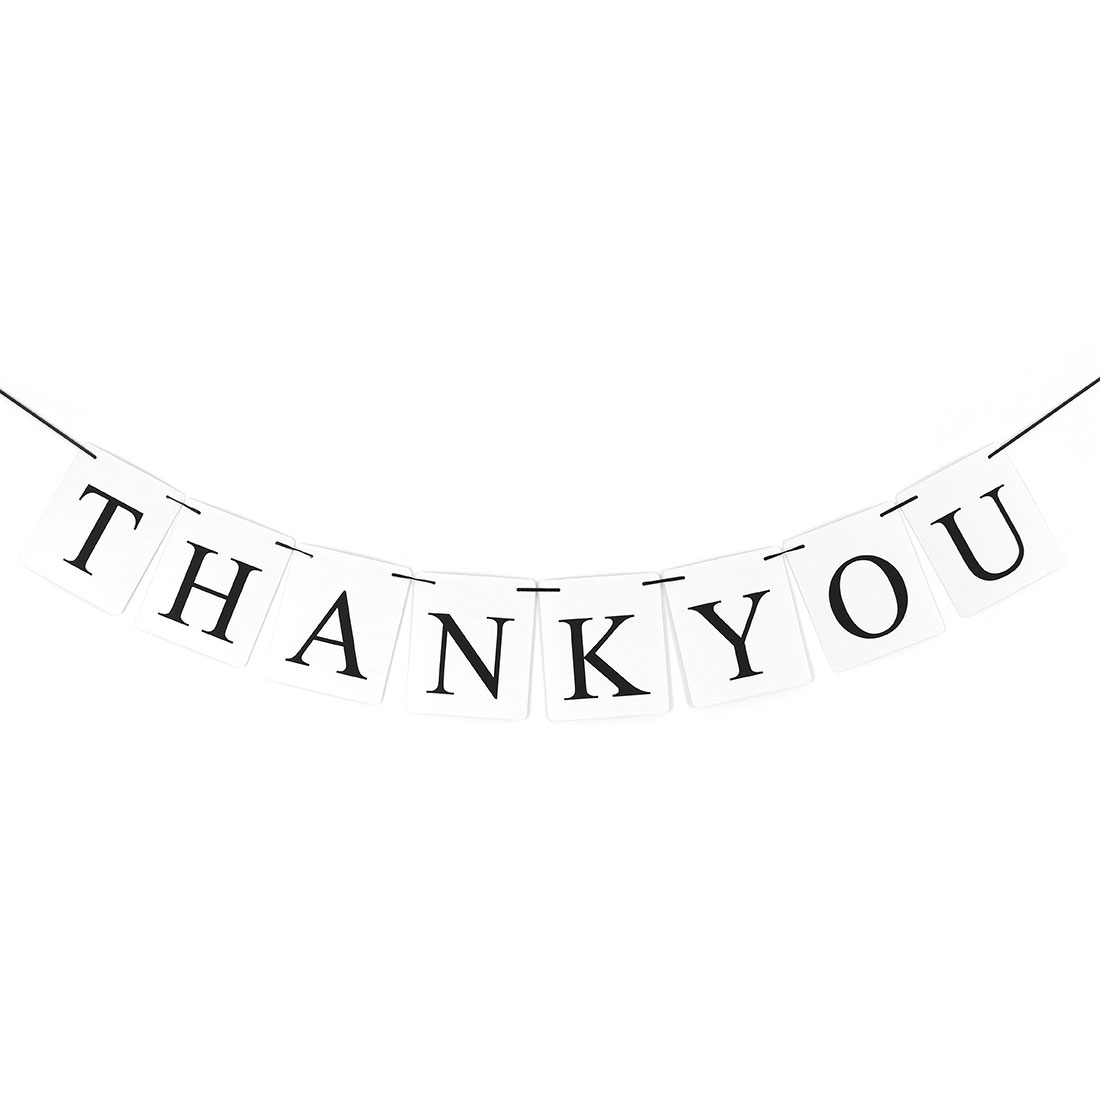 THANK YOU Letter Print Rectangle Card Rope Wall Hanging Party Decor Photo Prop Banner